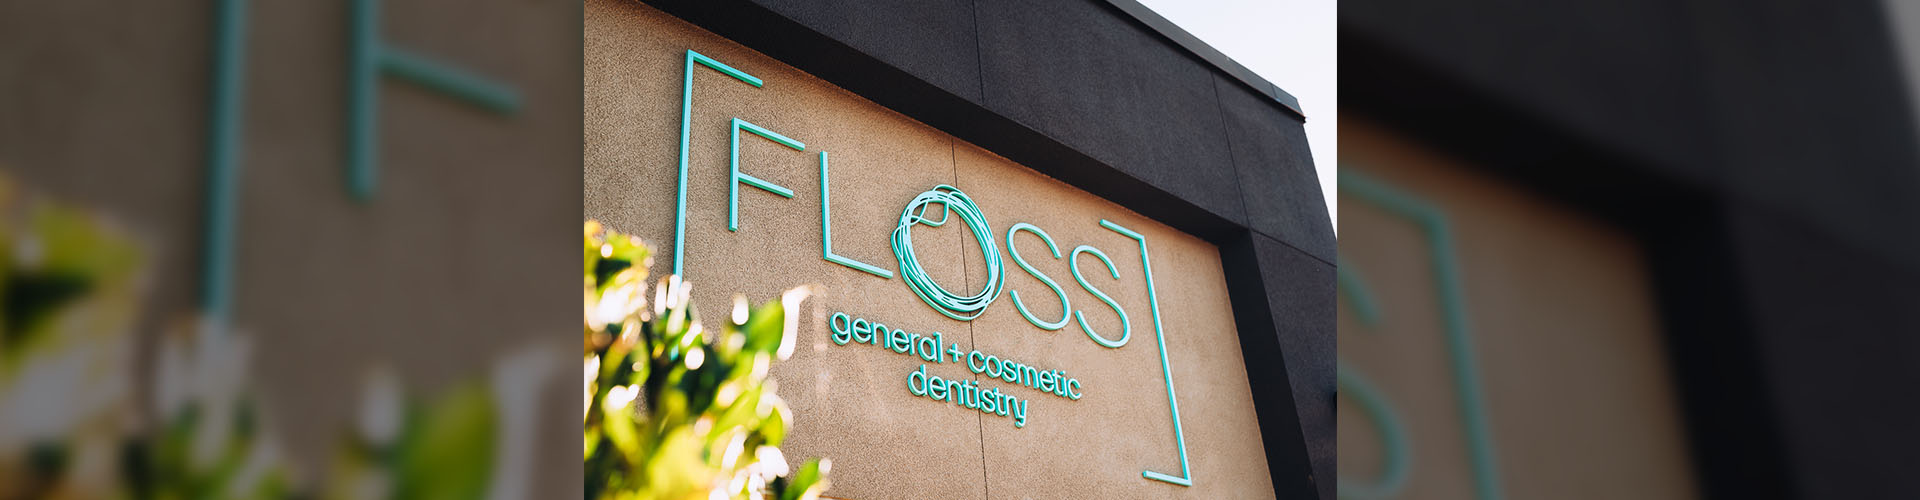 Exterior of Floss Dentistry in Seattle